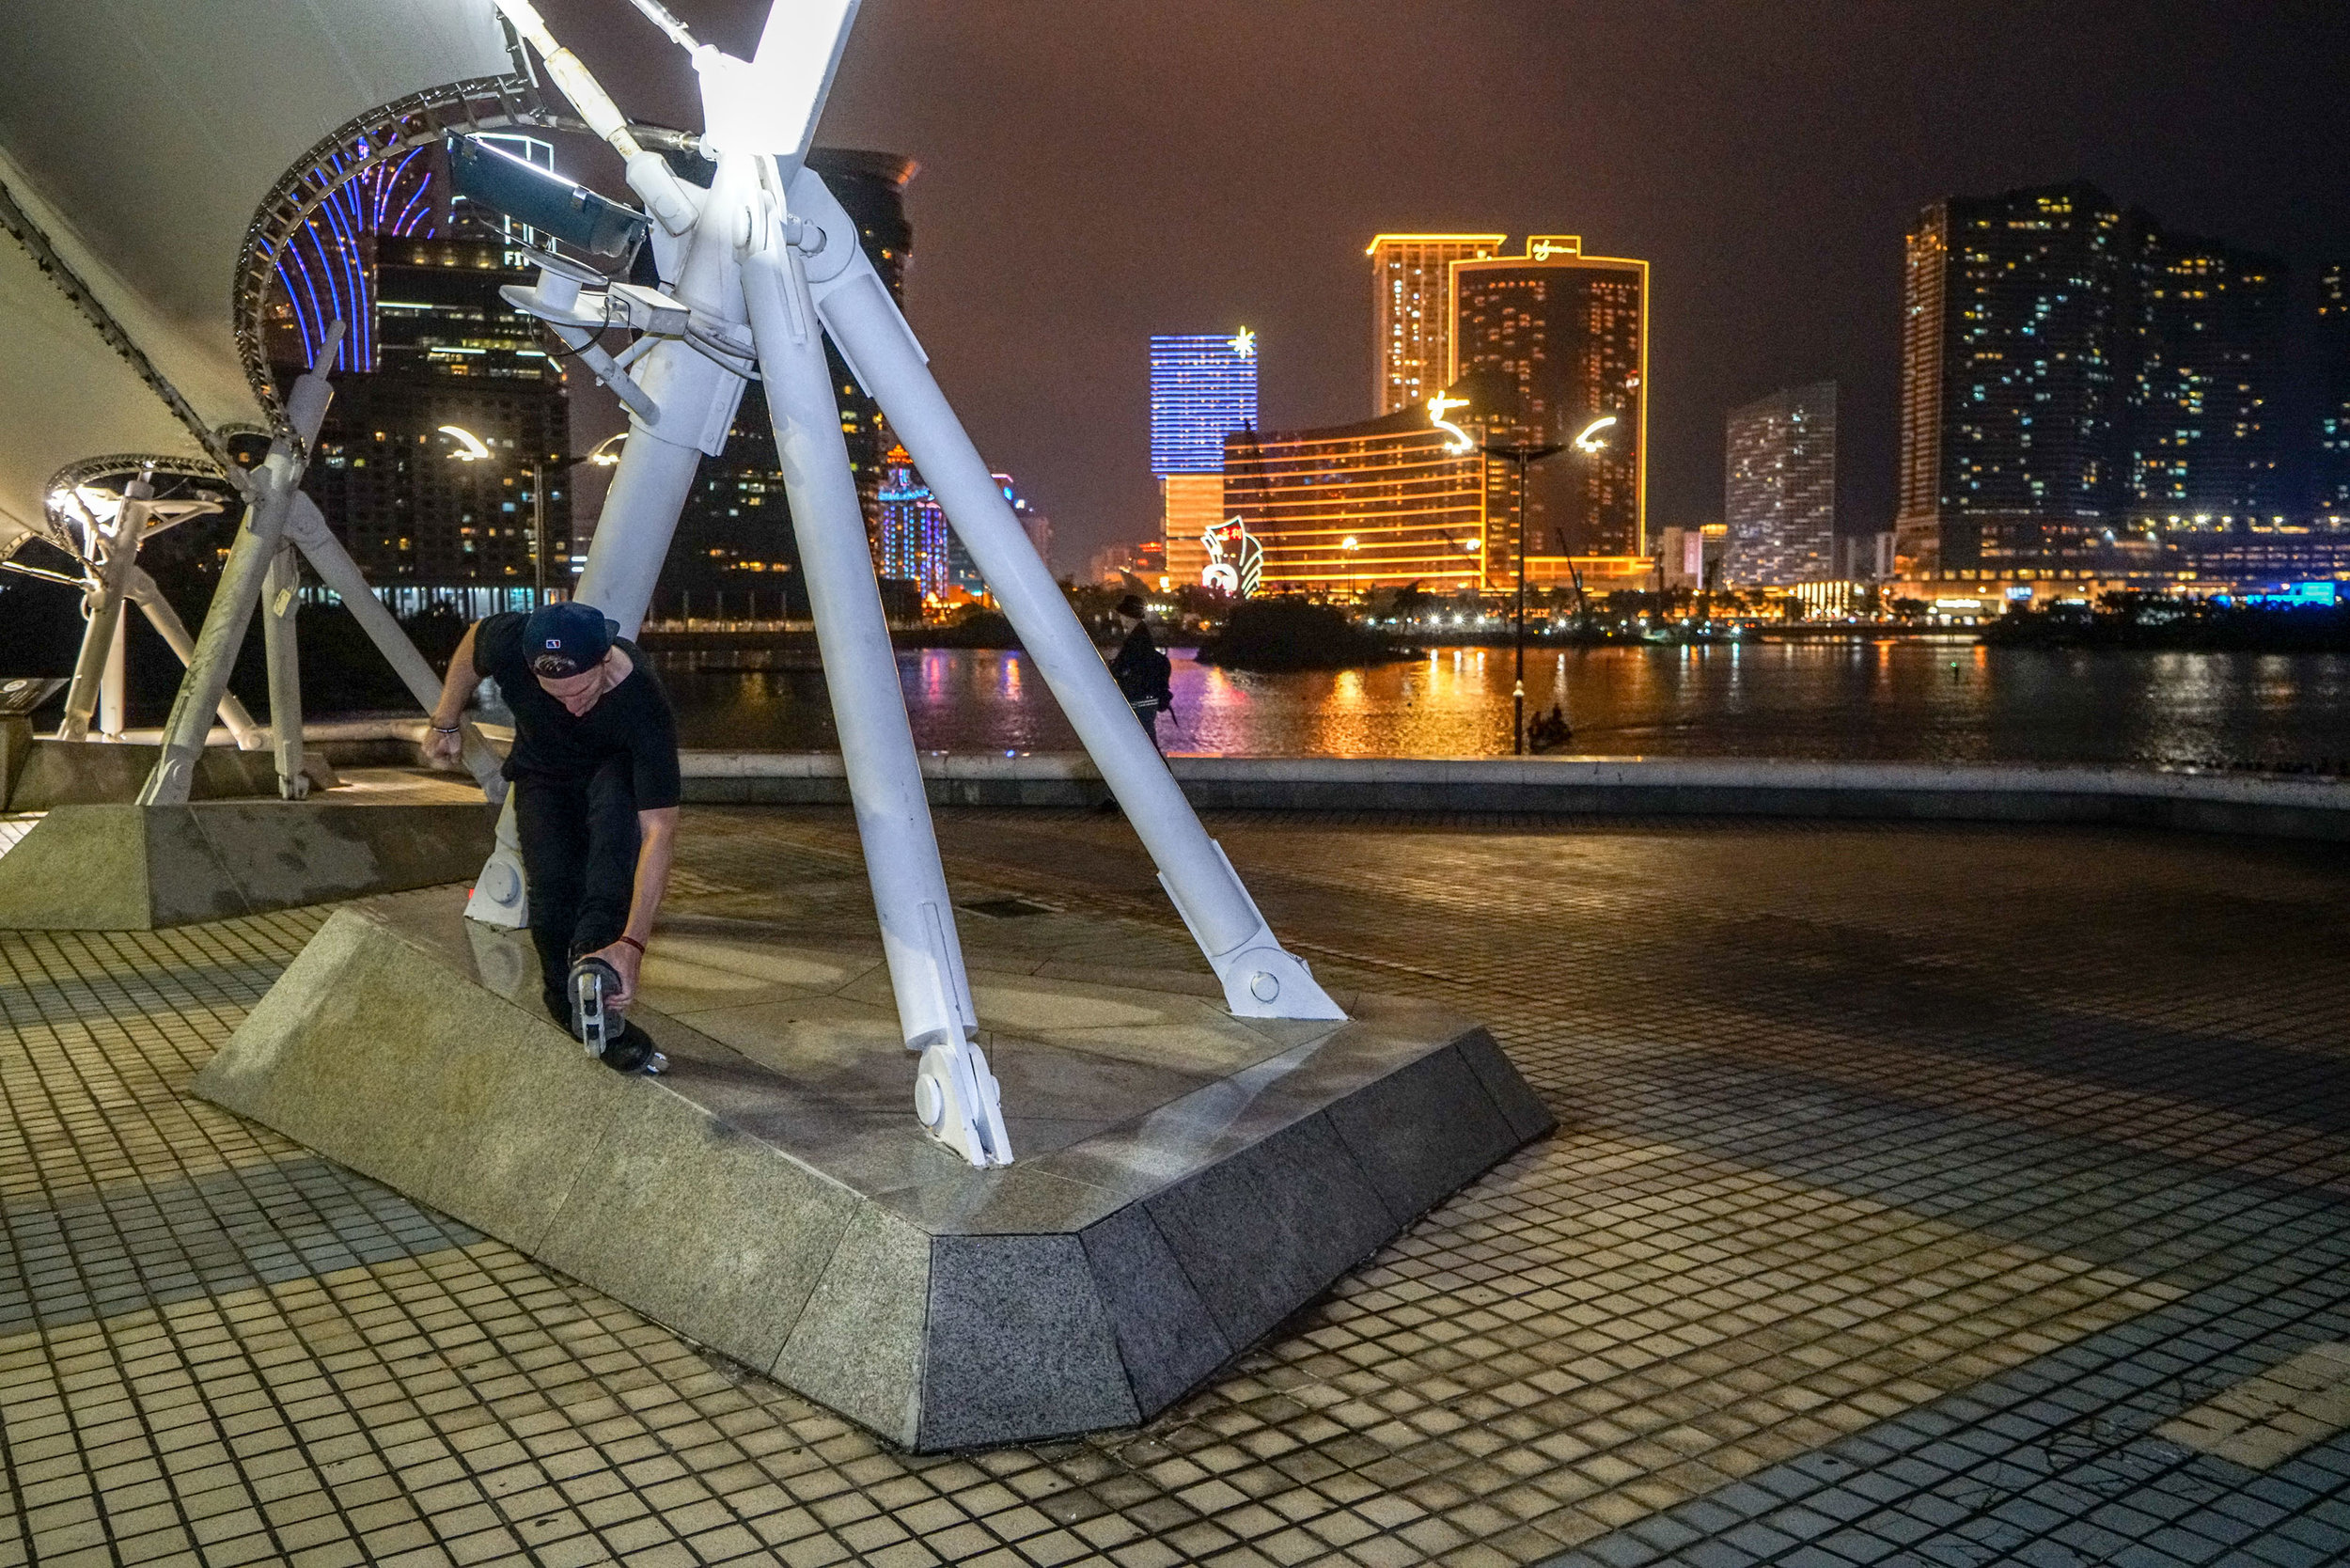 Half Cab Fishbrain in Macau - photo by Kyle Strauss